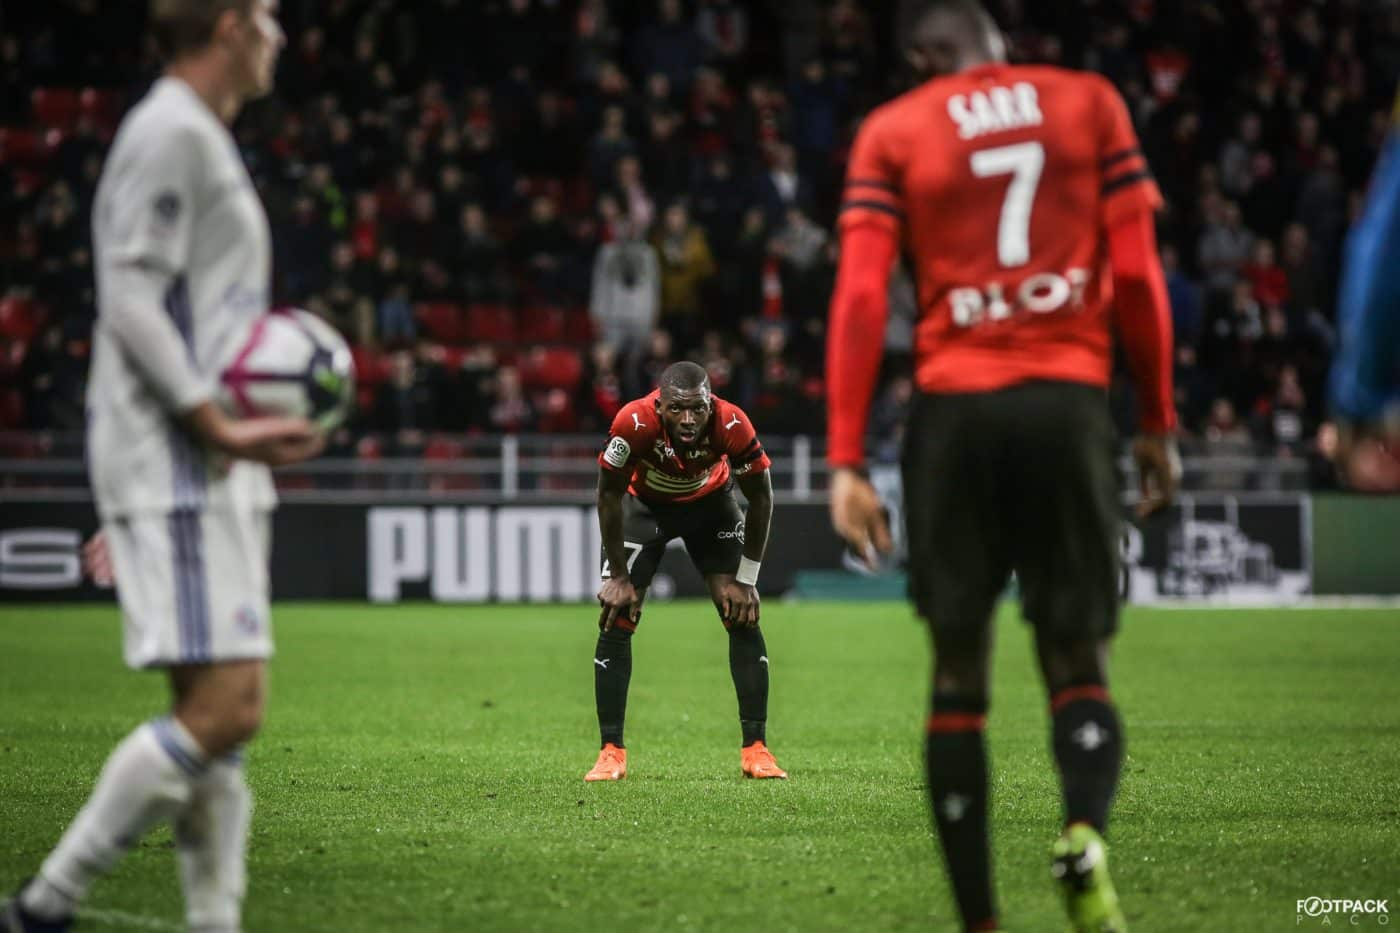 stade-rennais-top-50-photos-footpack